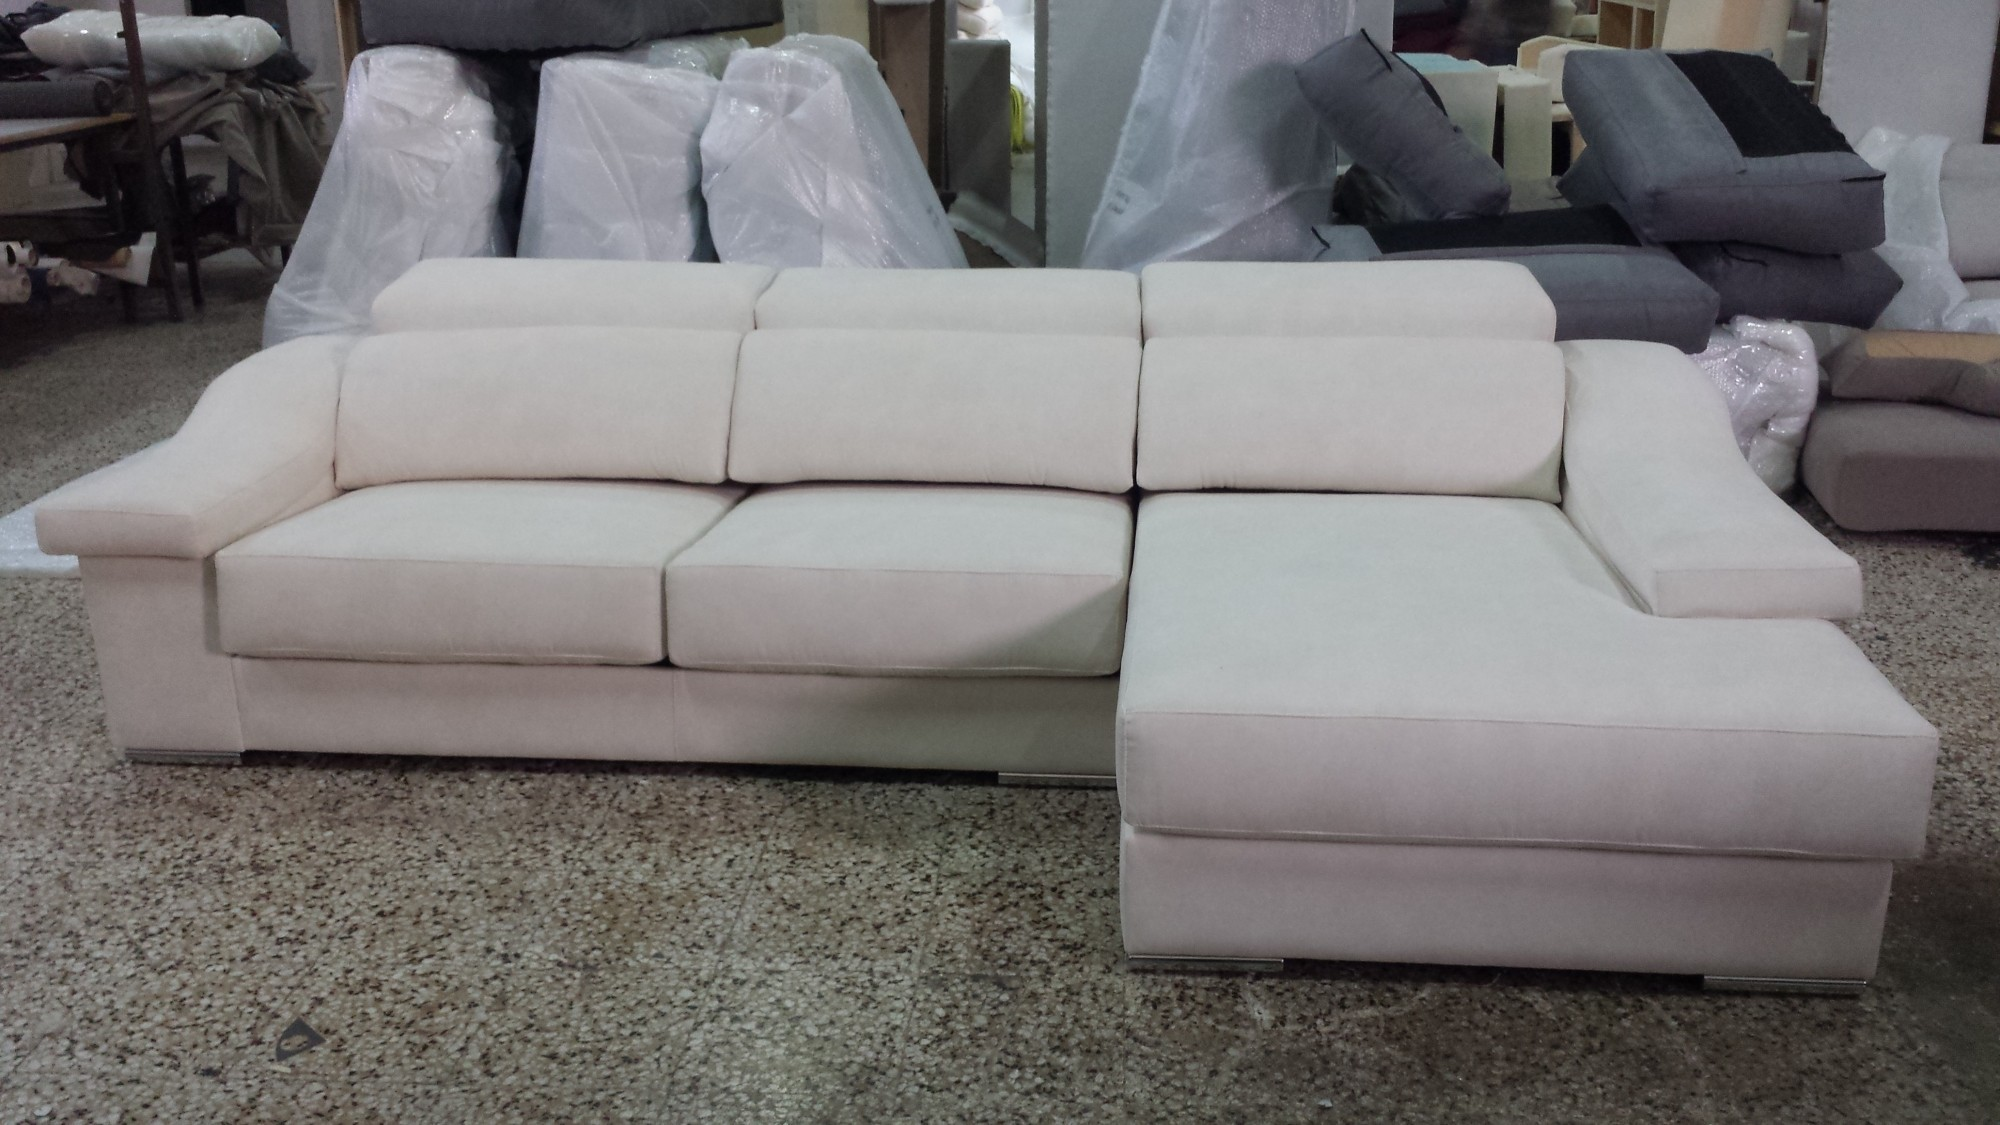 Sofas chaise longue baratos barcelona for Muebles la fabrica sofas